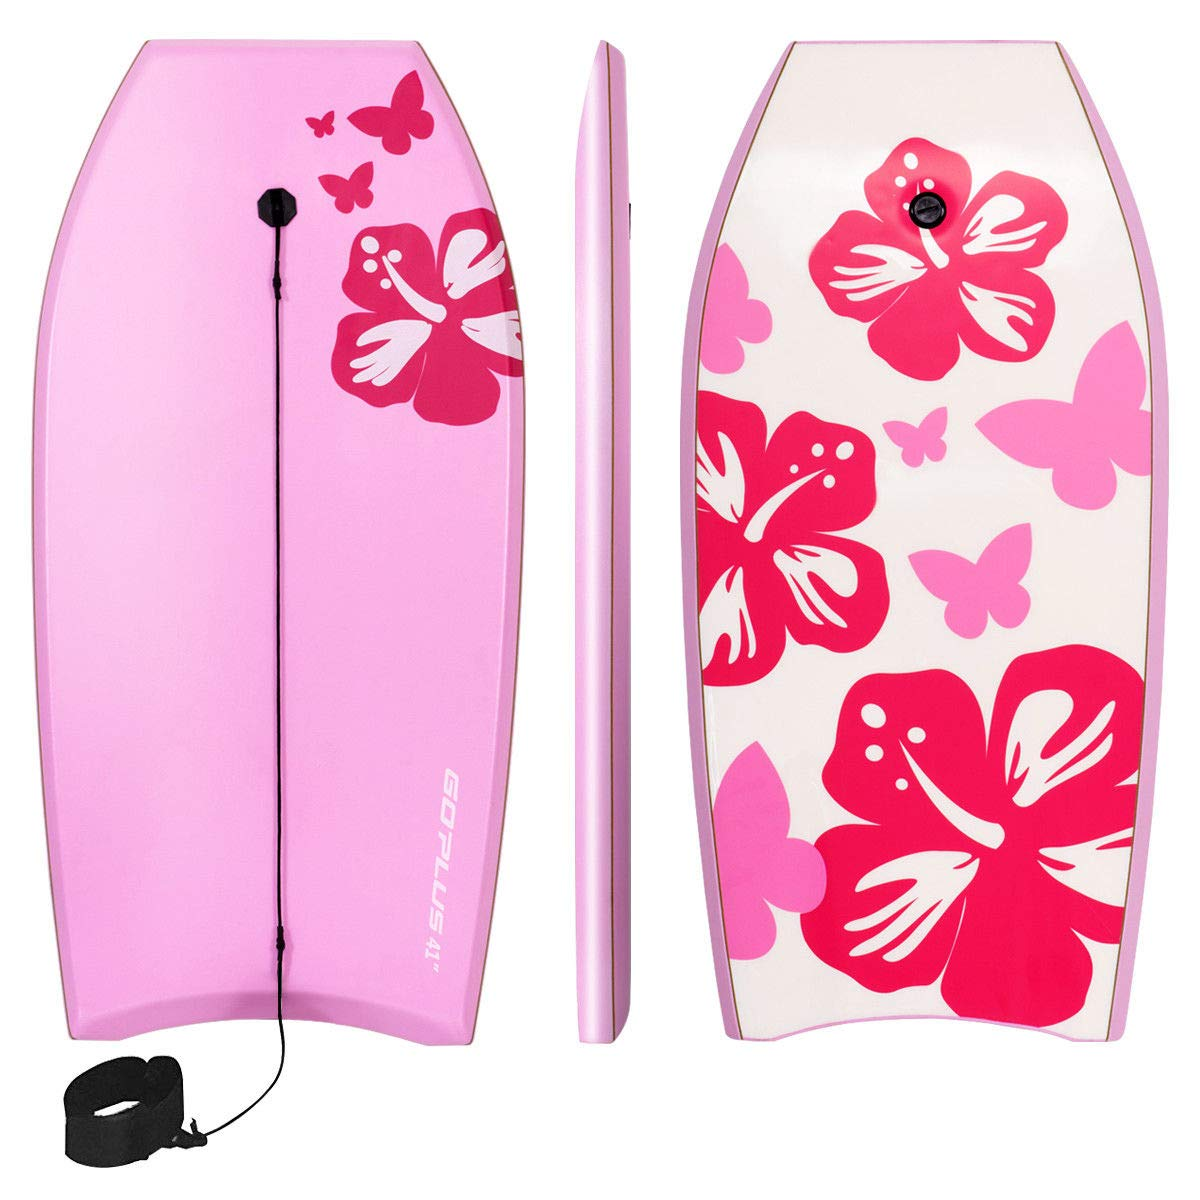 Goplus 41 inch Super Bodyboard Body Board EPS Core, IXPE Deck, HDPE Slick Bottom with Leash, Light Weight Perfect Surfing for Kids and Adults (Pink) by Goplus